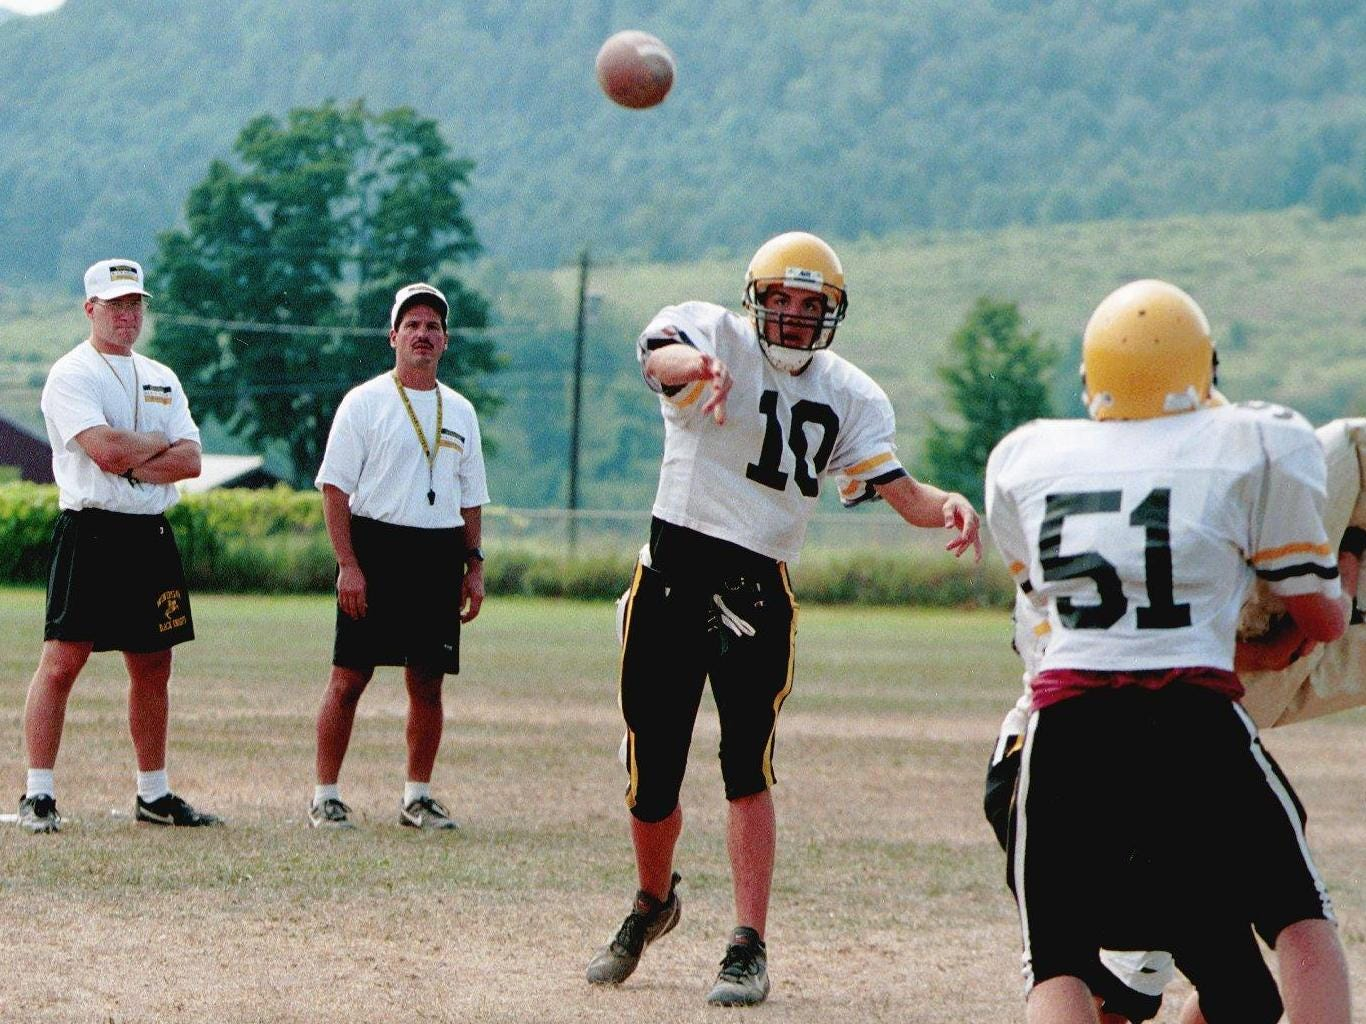 From 1998: Windsor varsity football coaches Bill Zakrajsek (left) and Jerry Testa (right) watch Windsor quarterback  throw a pass during a practice.